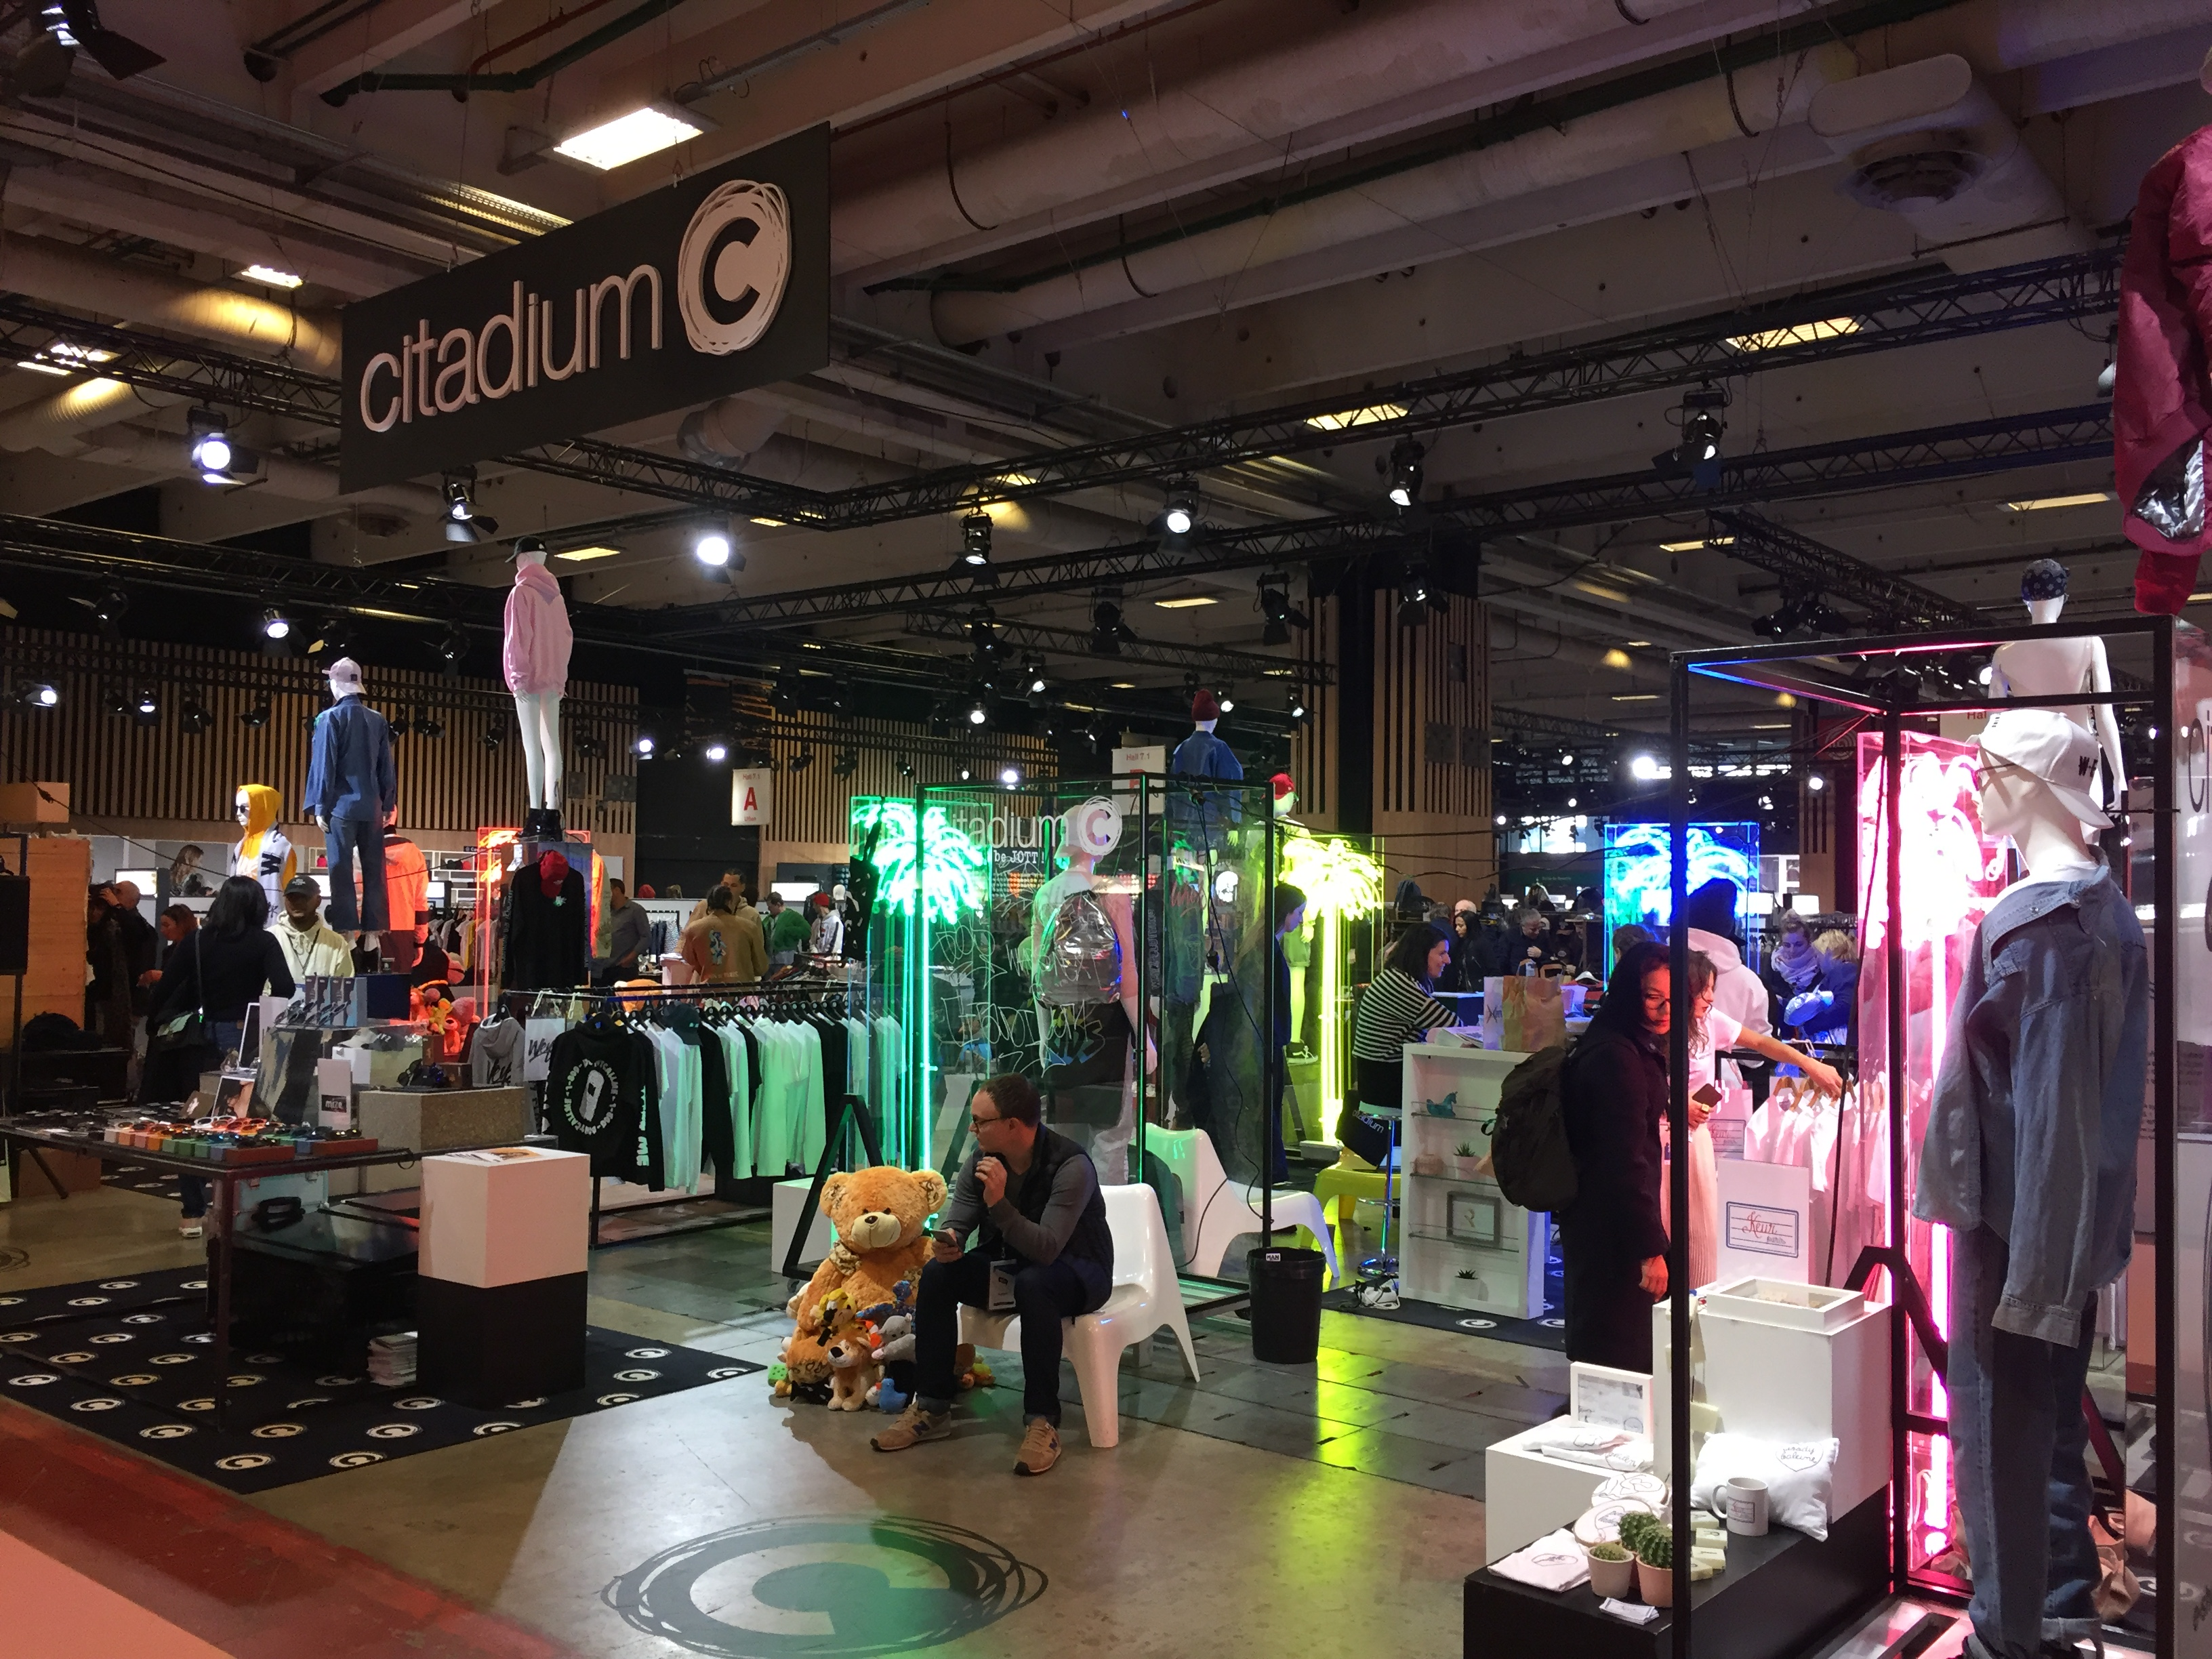 Citadium space in the Urban area